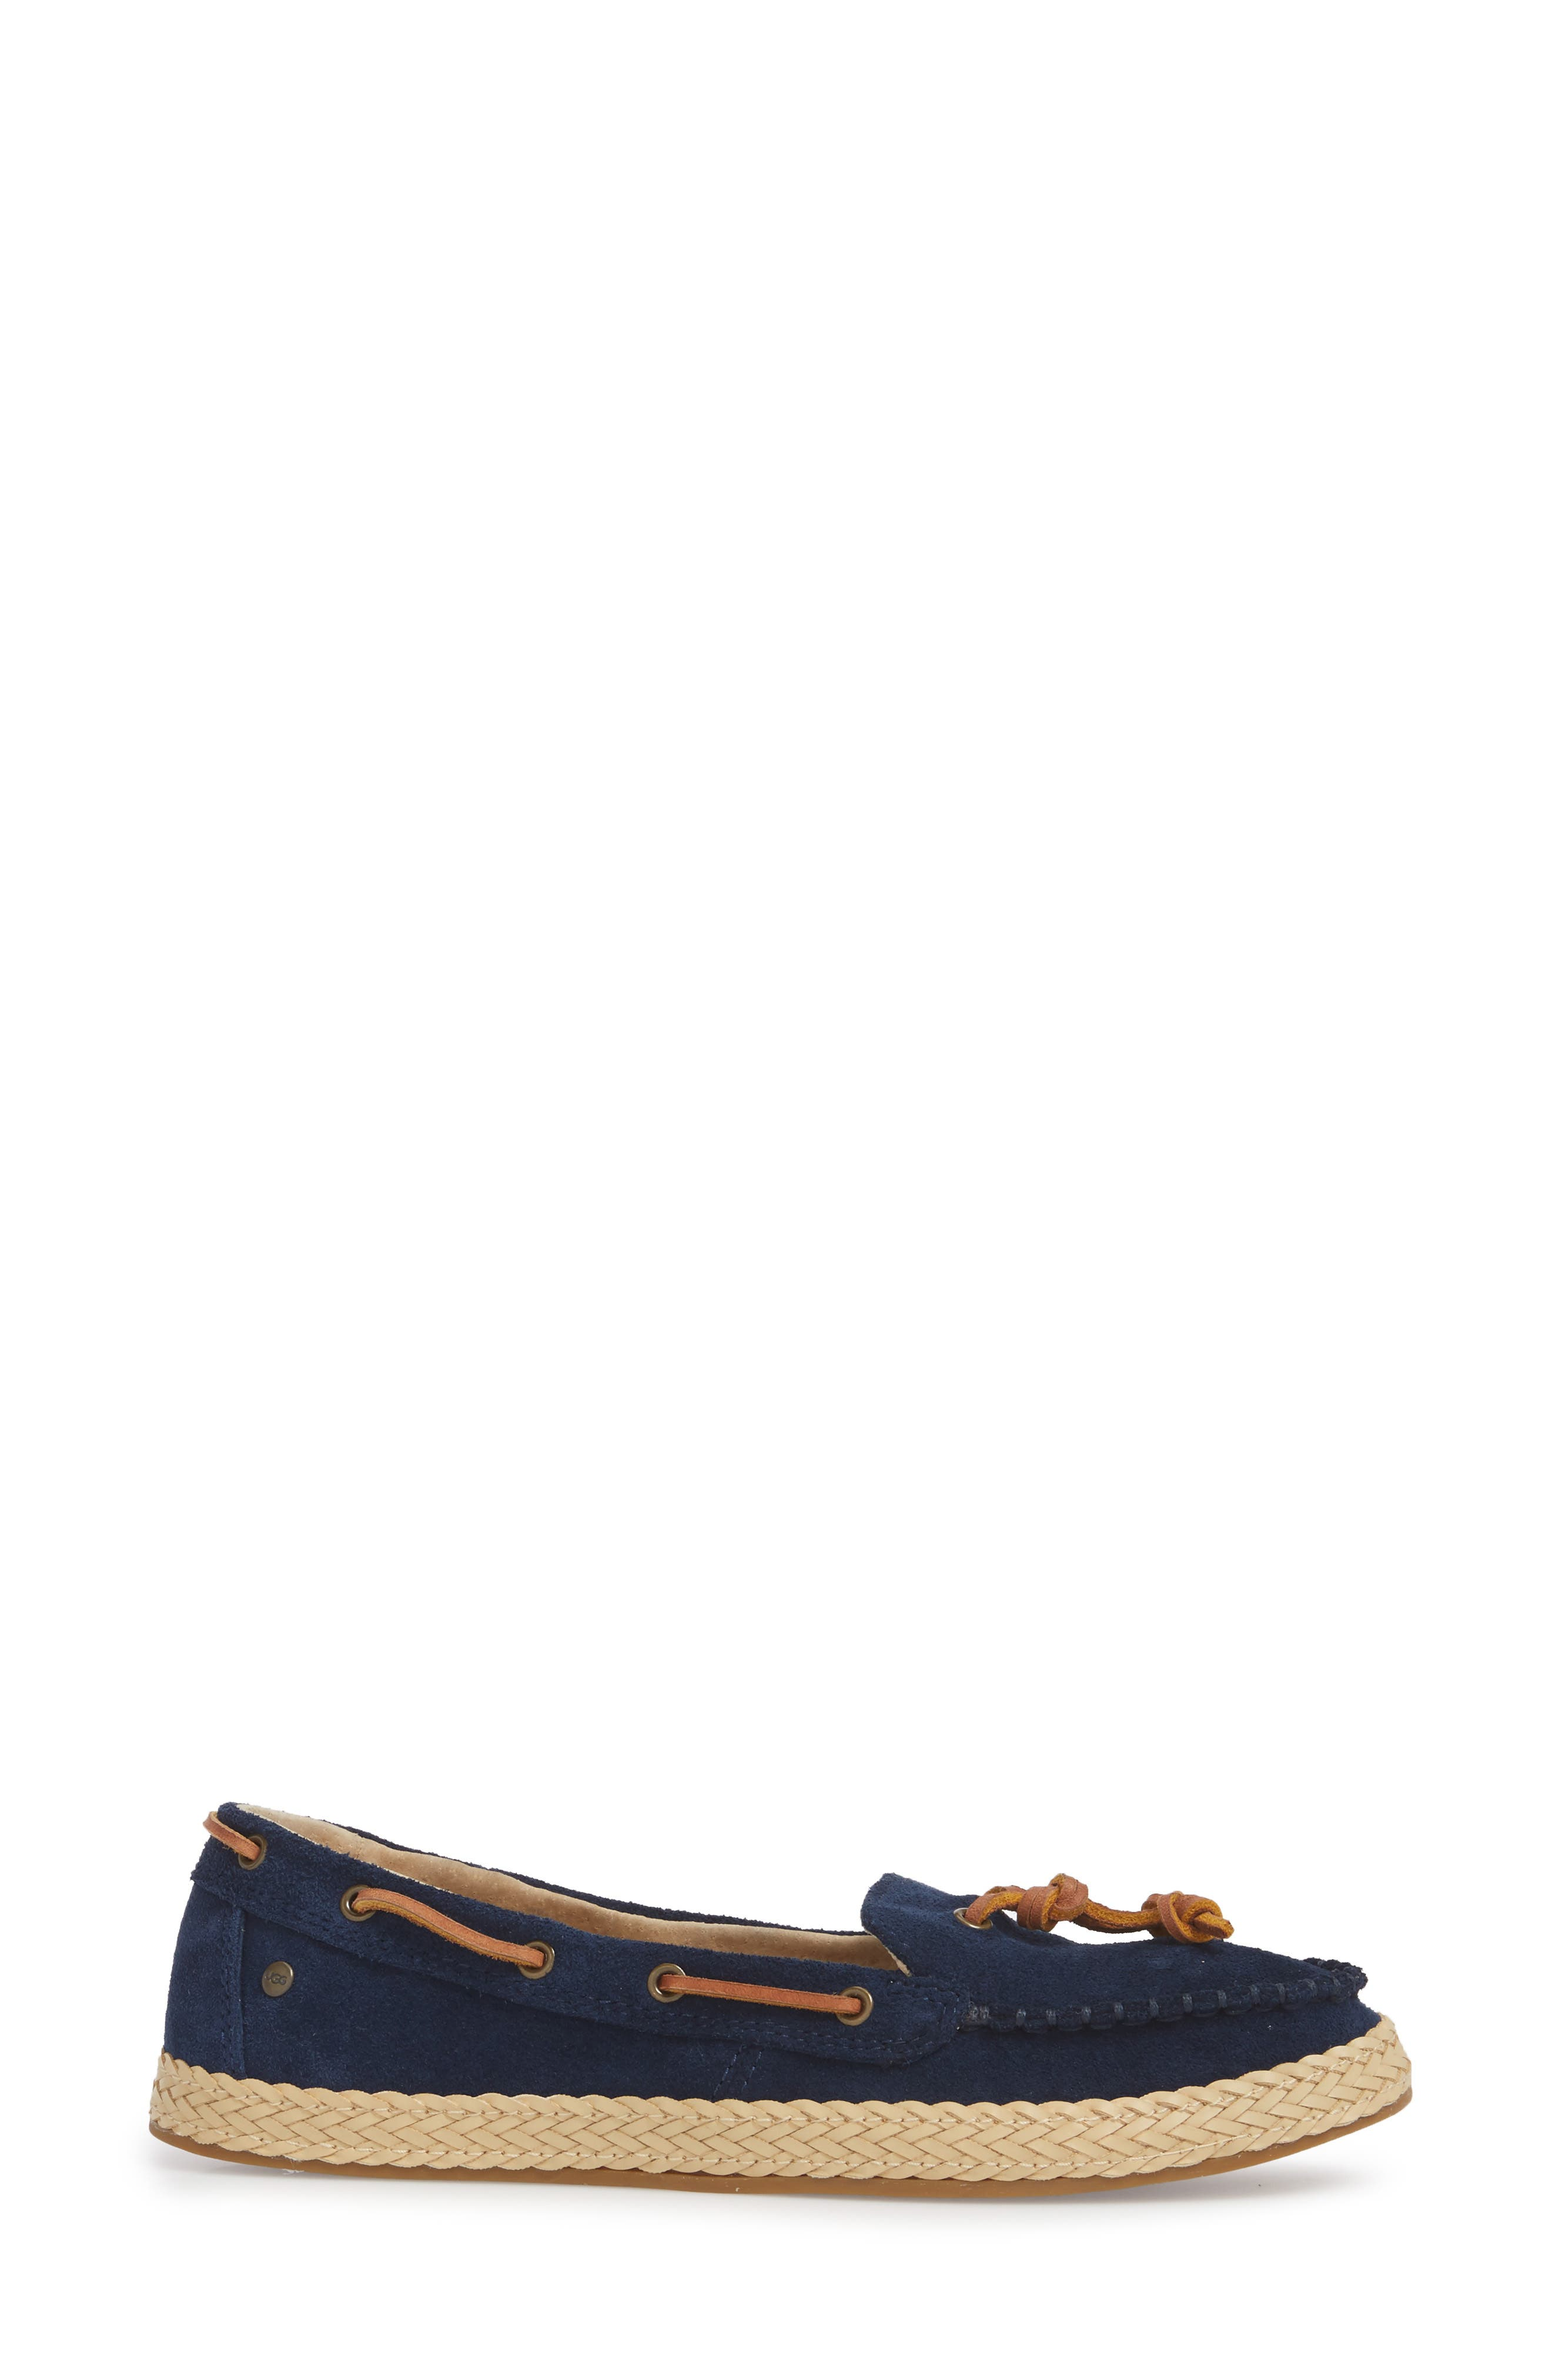 Channtal Loafer,                             Alternate thumbnail 3, color,                             Navy Suede